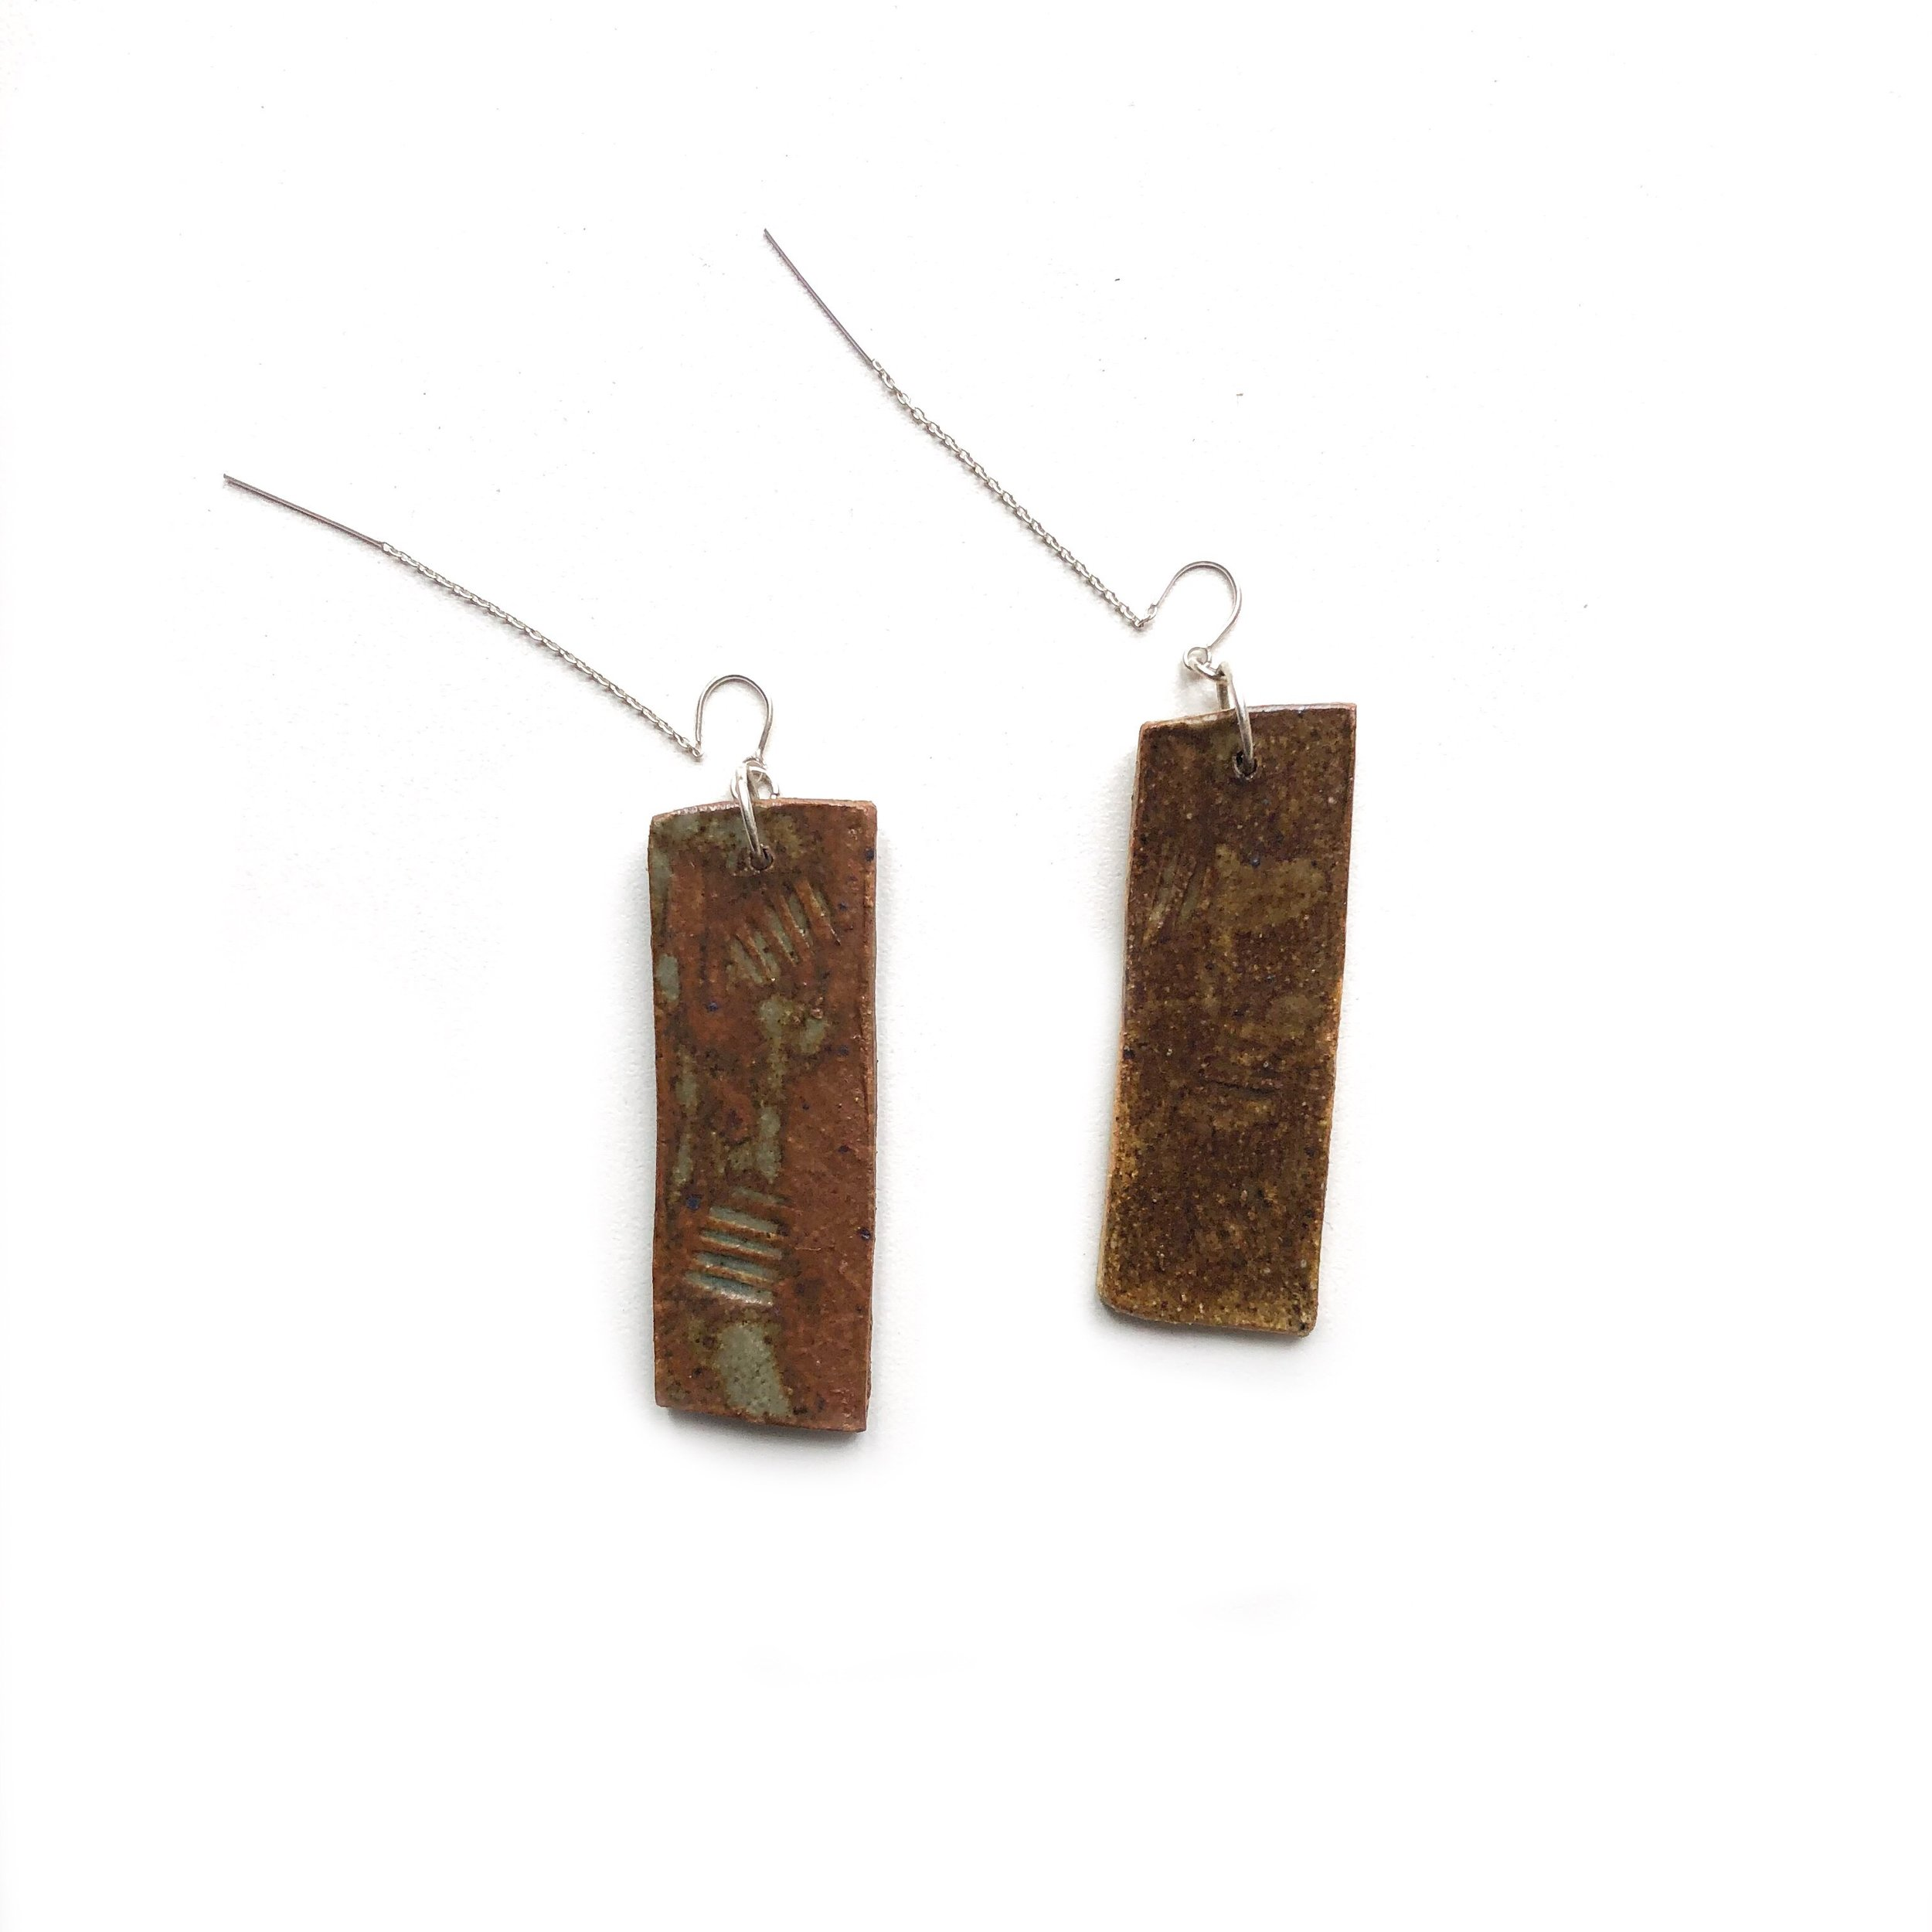 kushins_ceramic_earrings8.JPG